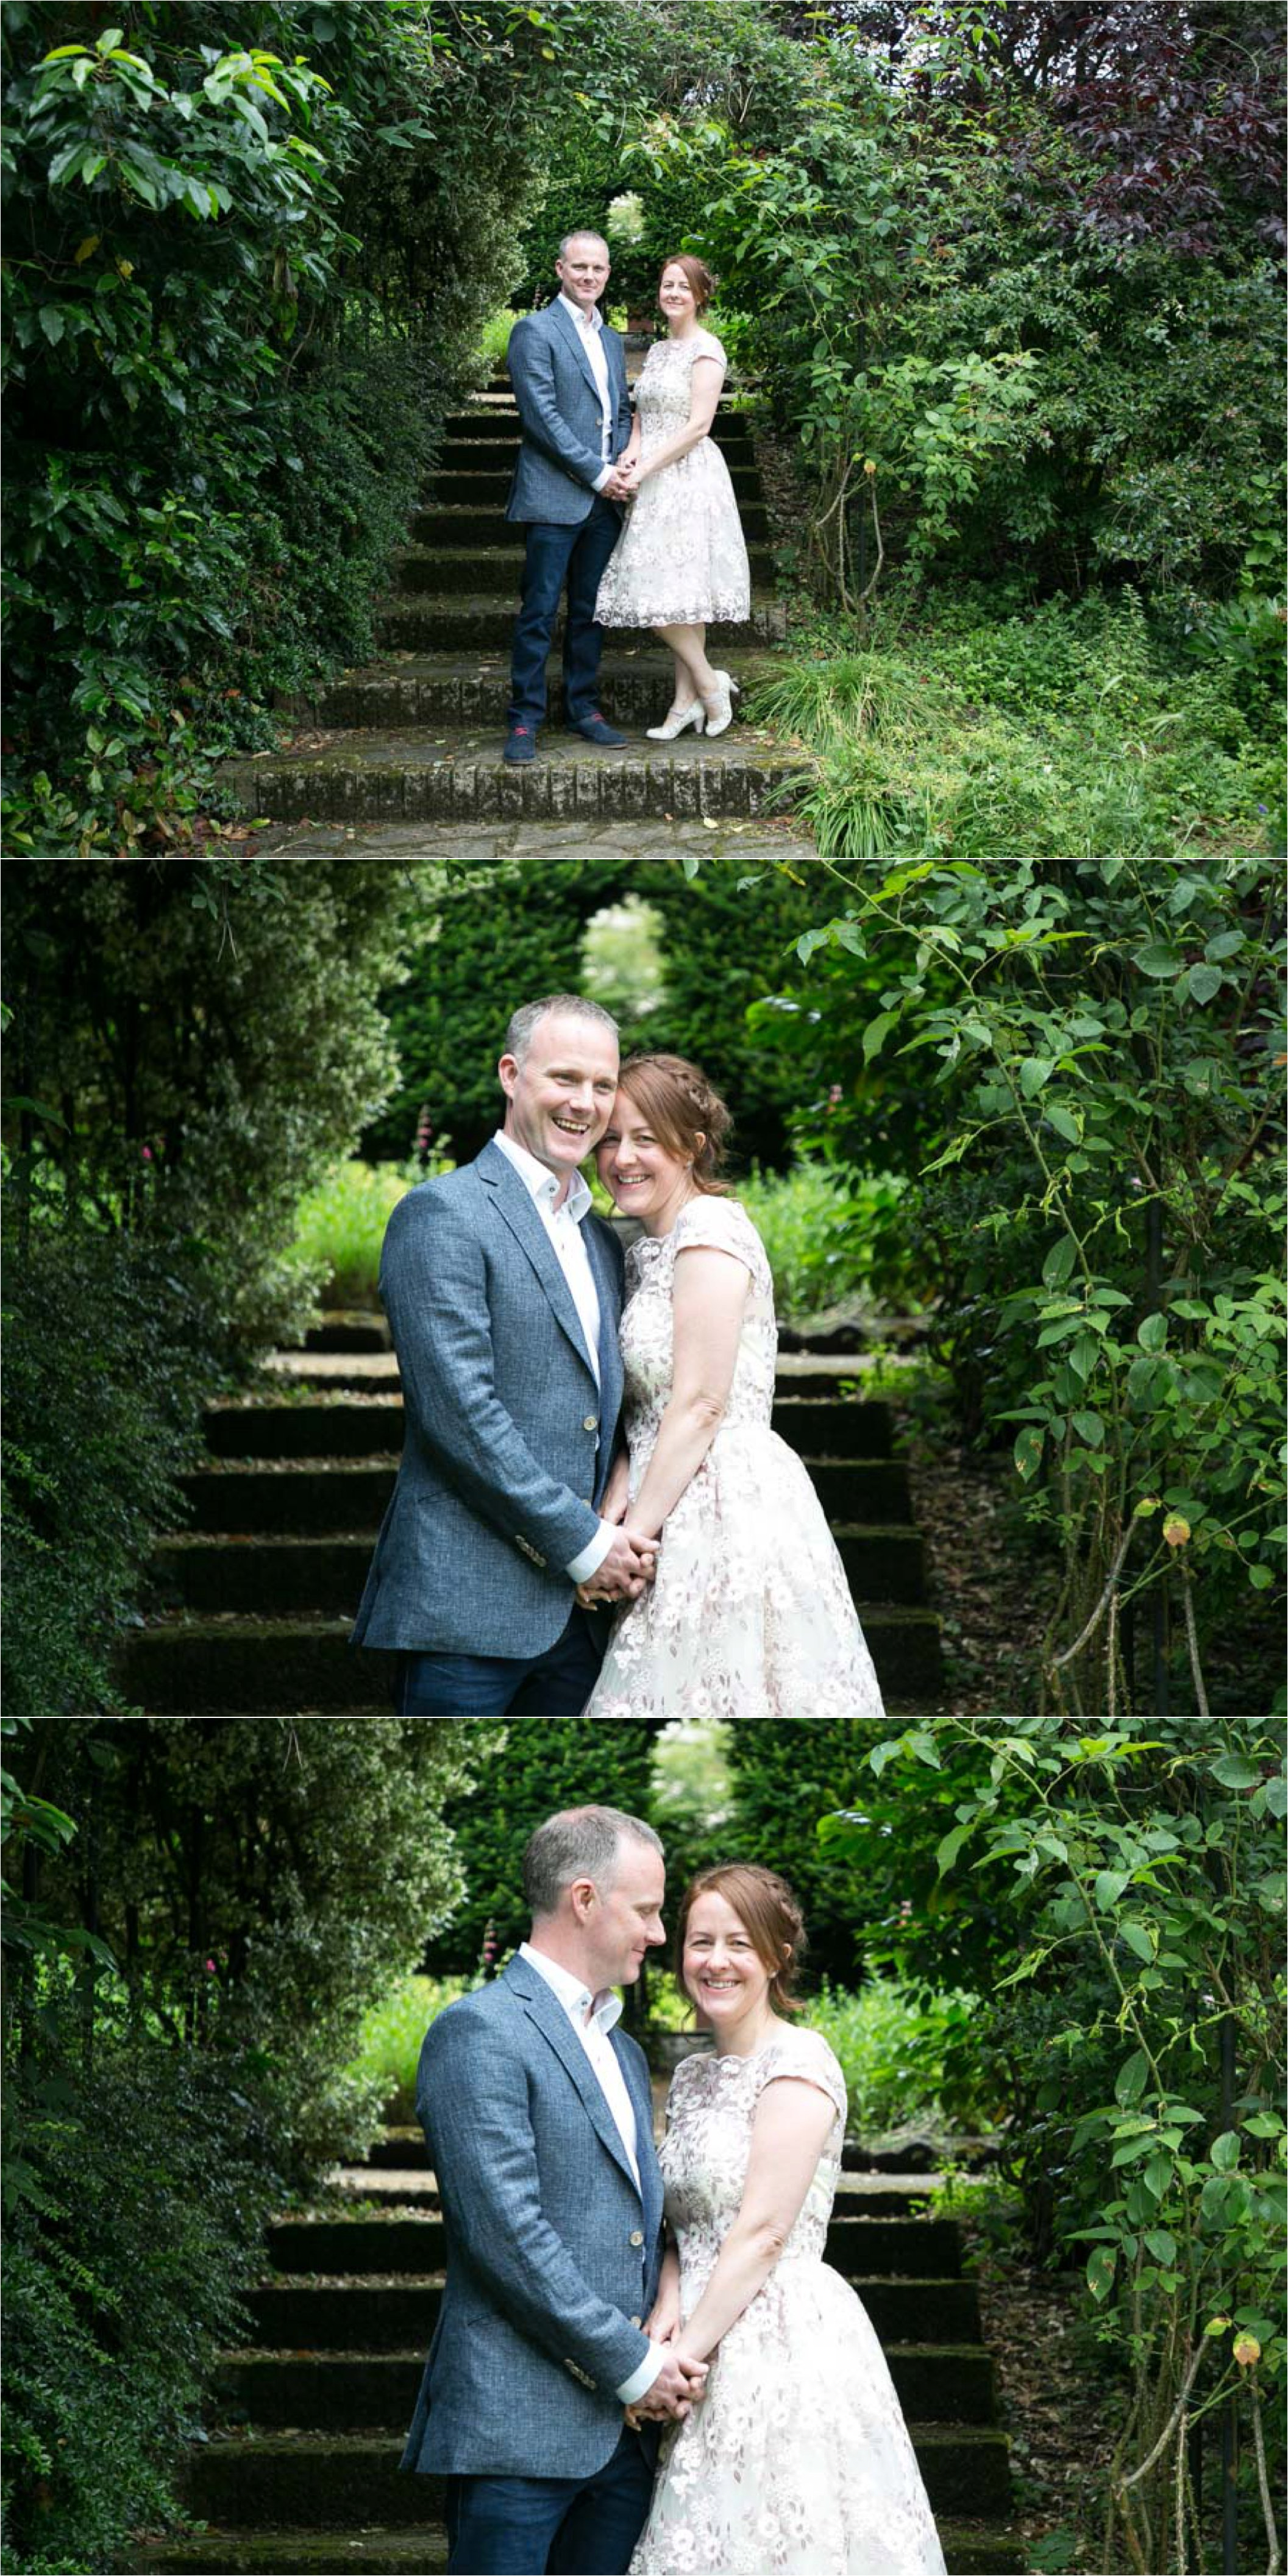 wedding photography in the abbey gardens, bury st edmunds